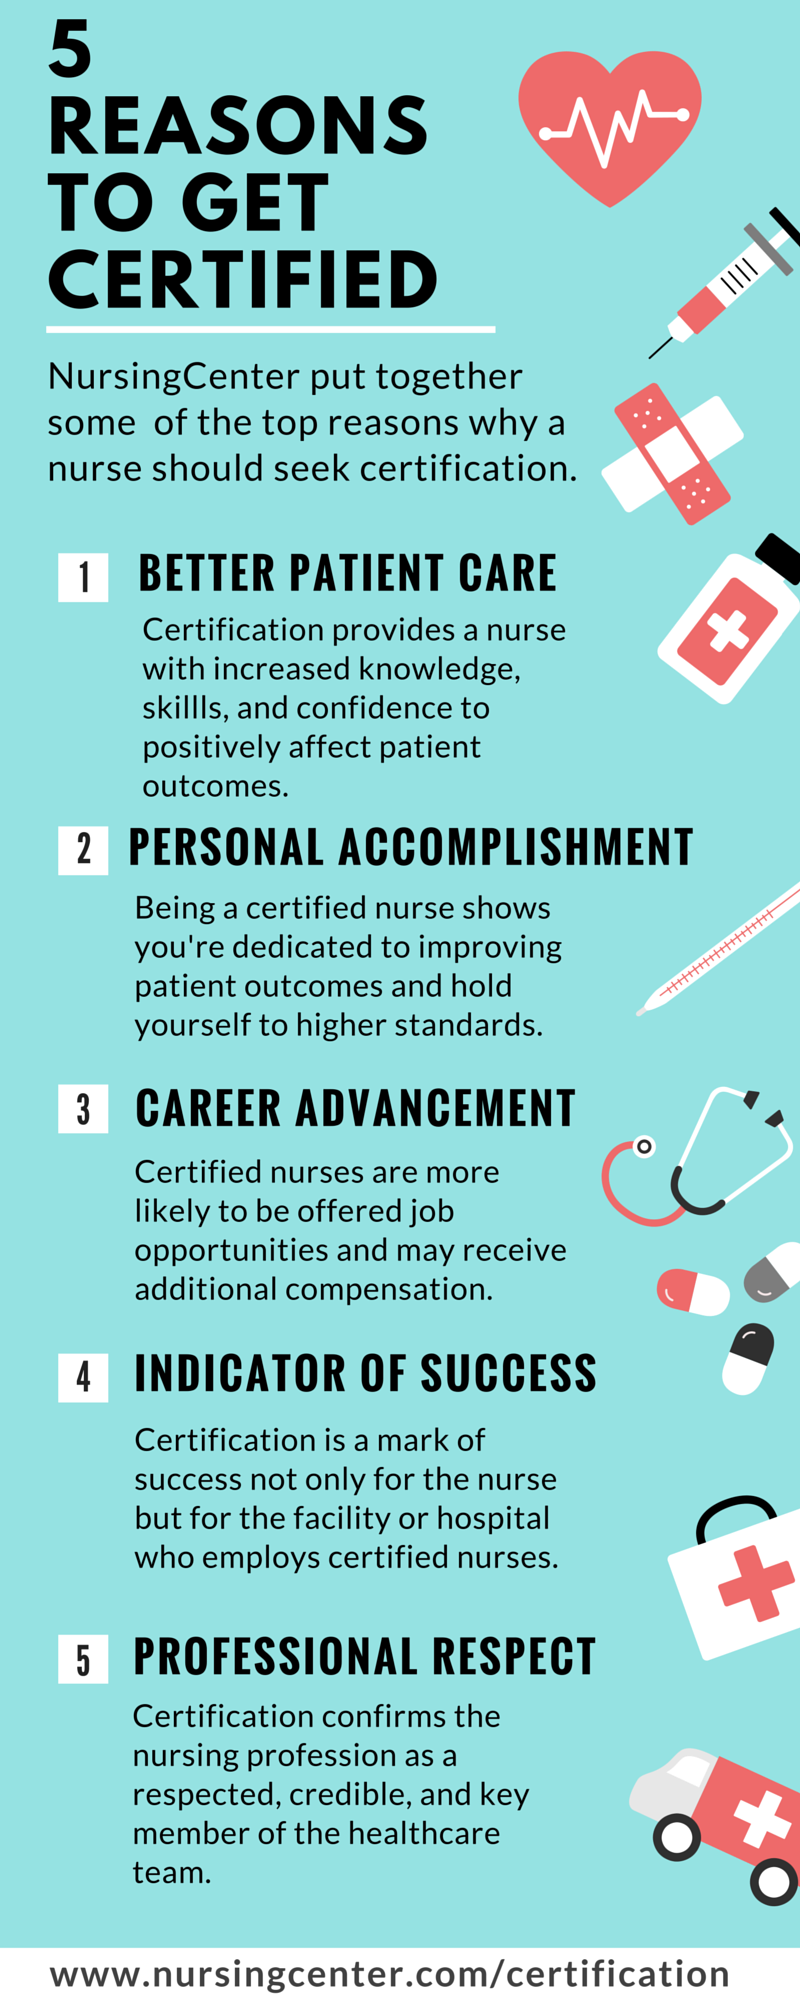 Top reasons why a nurse should become certified in a specialty top reasons why a nurse should become certified in a specialty xflitez Gallery